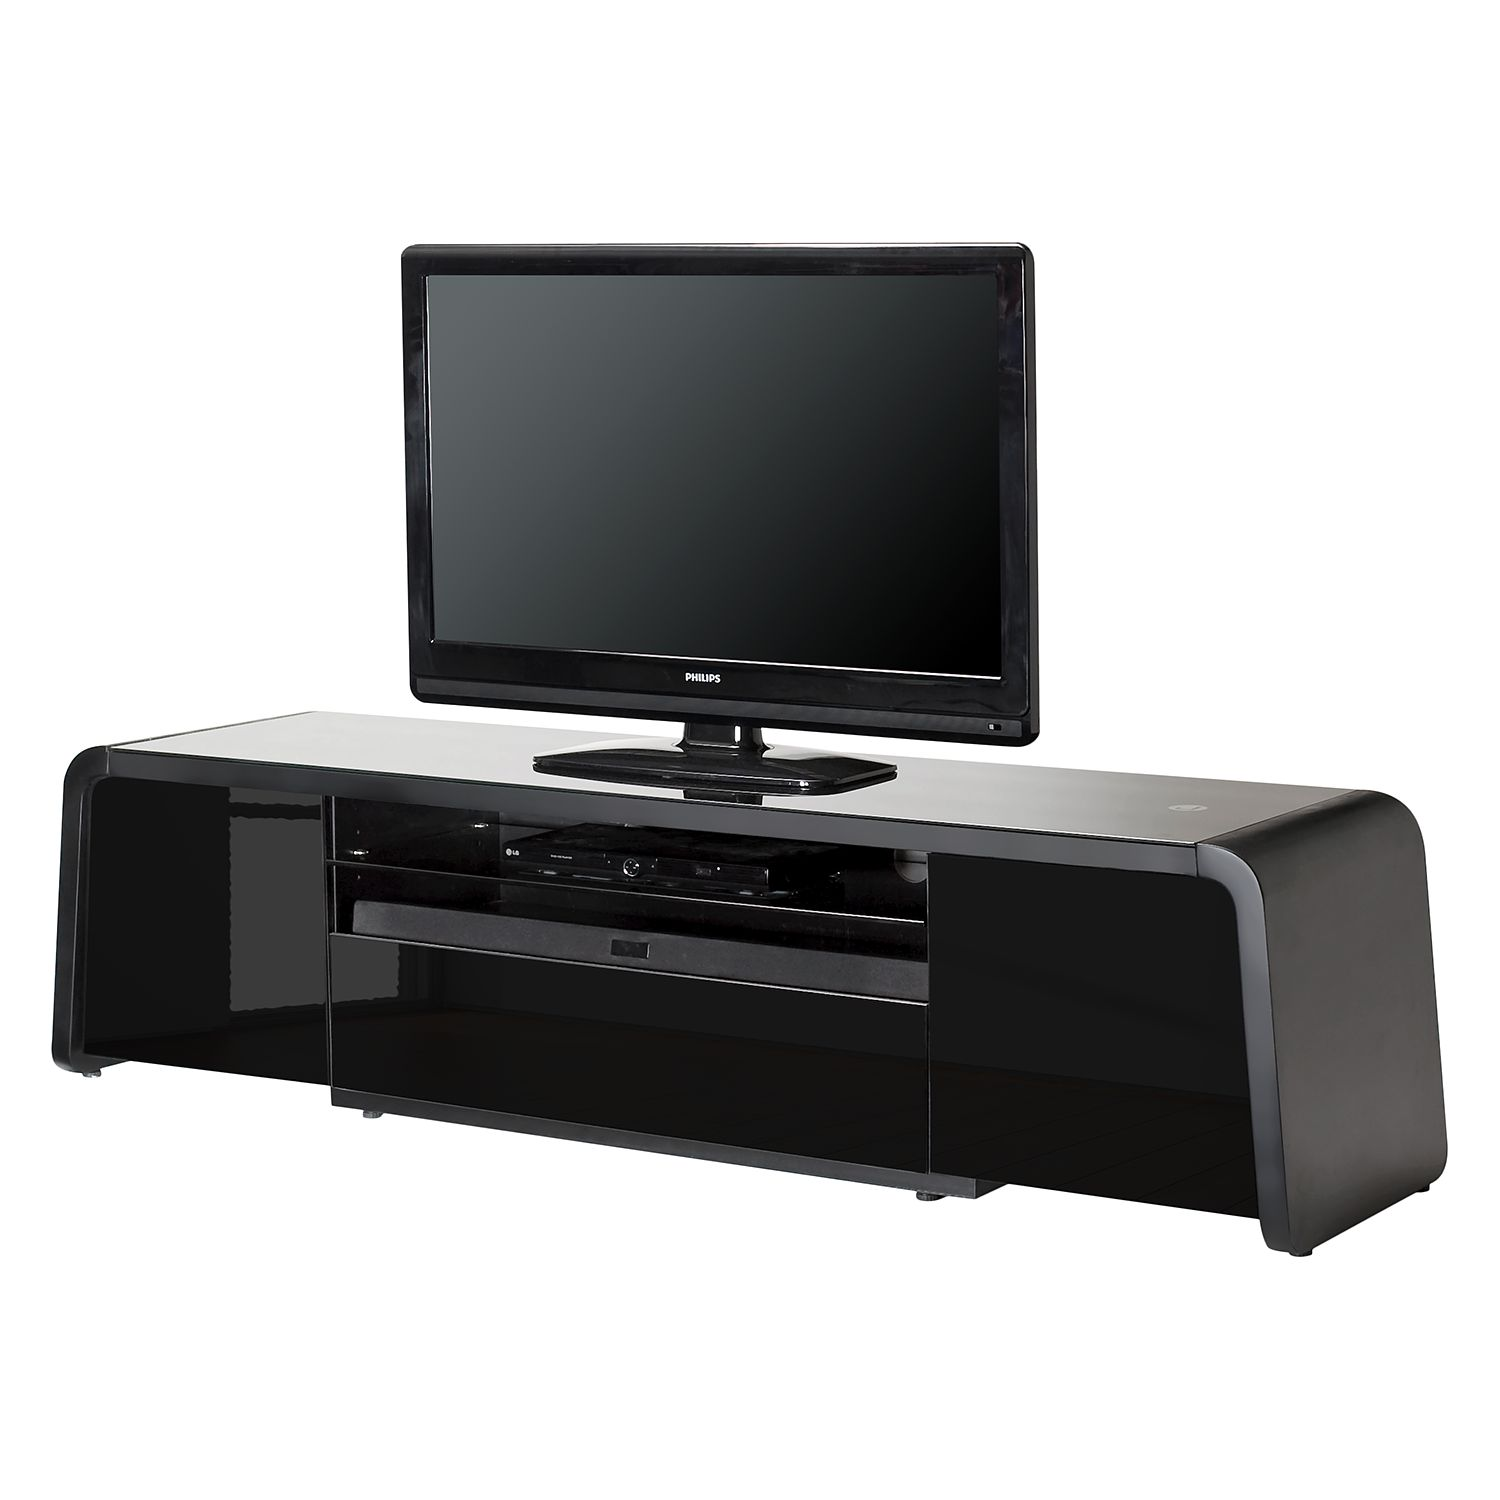 tv lowboard sl 4200 matt schwarz jahnke online kaufen bei woonio. Black Bedroom Furniture Sets. Home Design Ideas